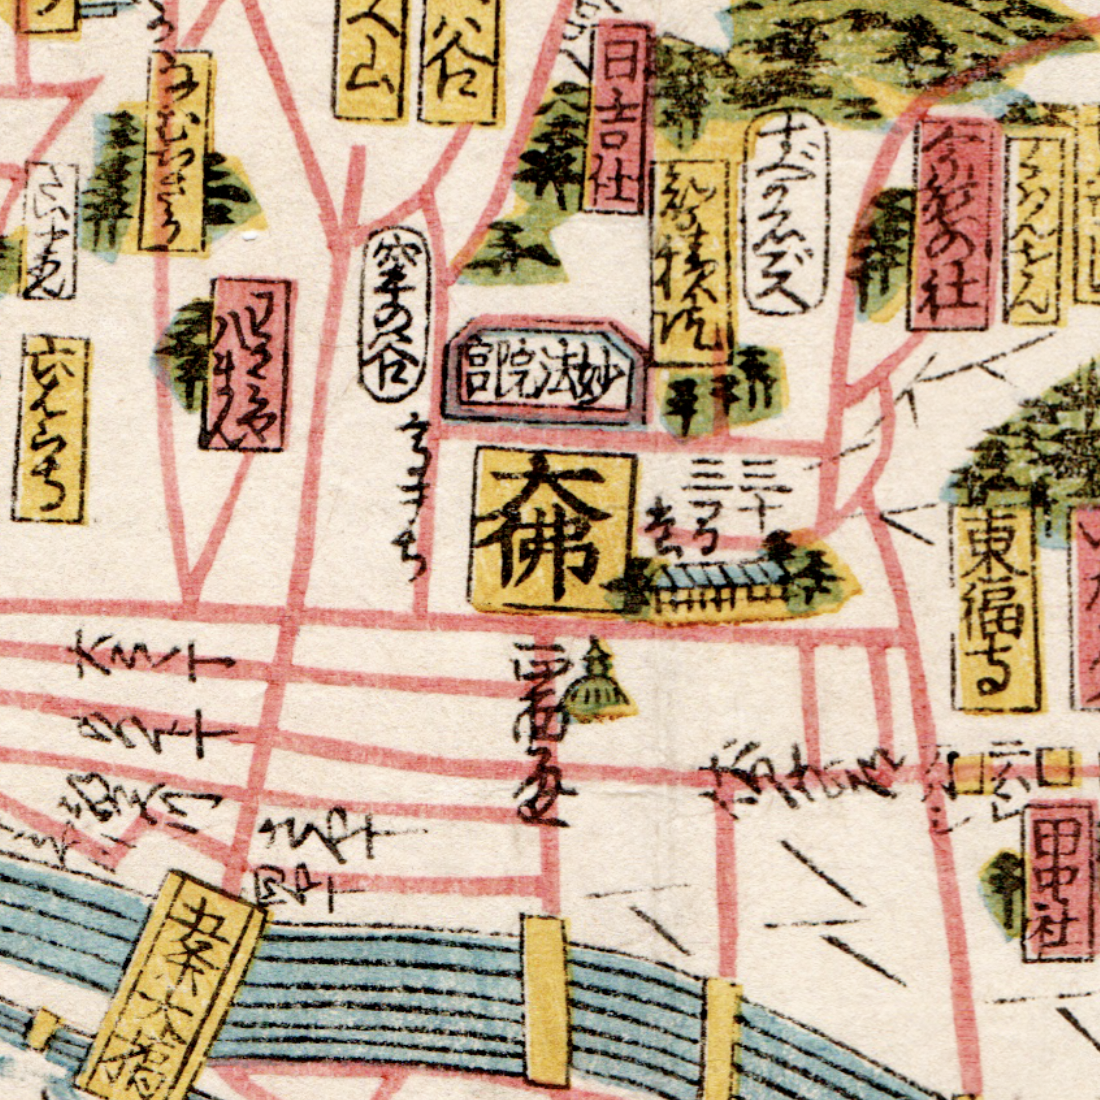 "The Kyoto Daibutsu stood on what is now the Daibutsudenato Ryokuchi Park. Strangely the person who drew this map left out Toyokuni Jinja (aka Hōkoku Jinja) and labelled the whole area Daibutsu (大佛).  The area behind the Daibutsu is labelled Myohoingu 妙法院宮. The Kyoto National Museum now stands on what used to be the ""gu"" (Palace) part of Myohoingu."